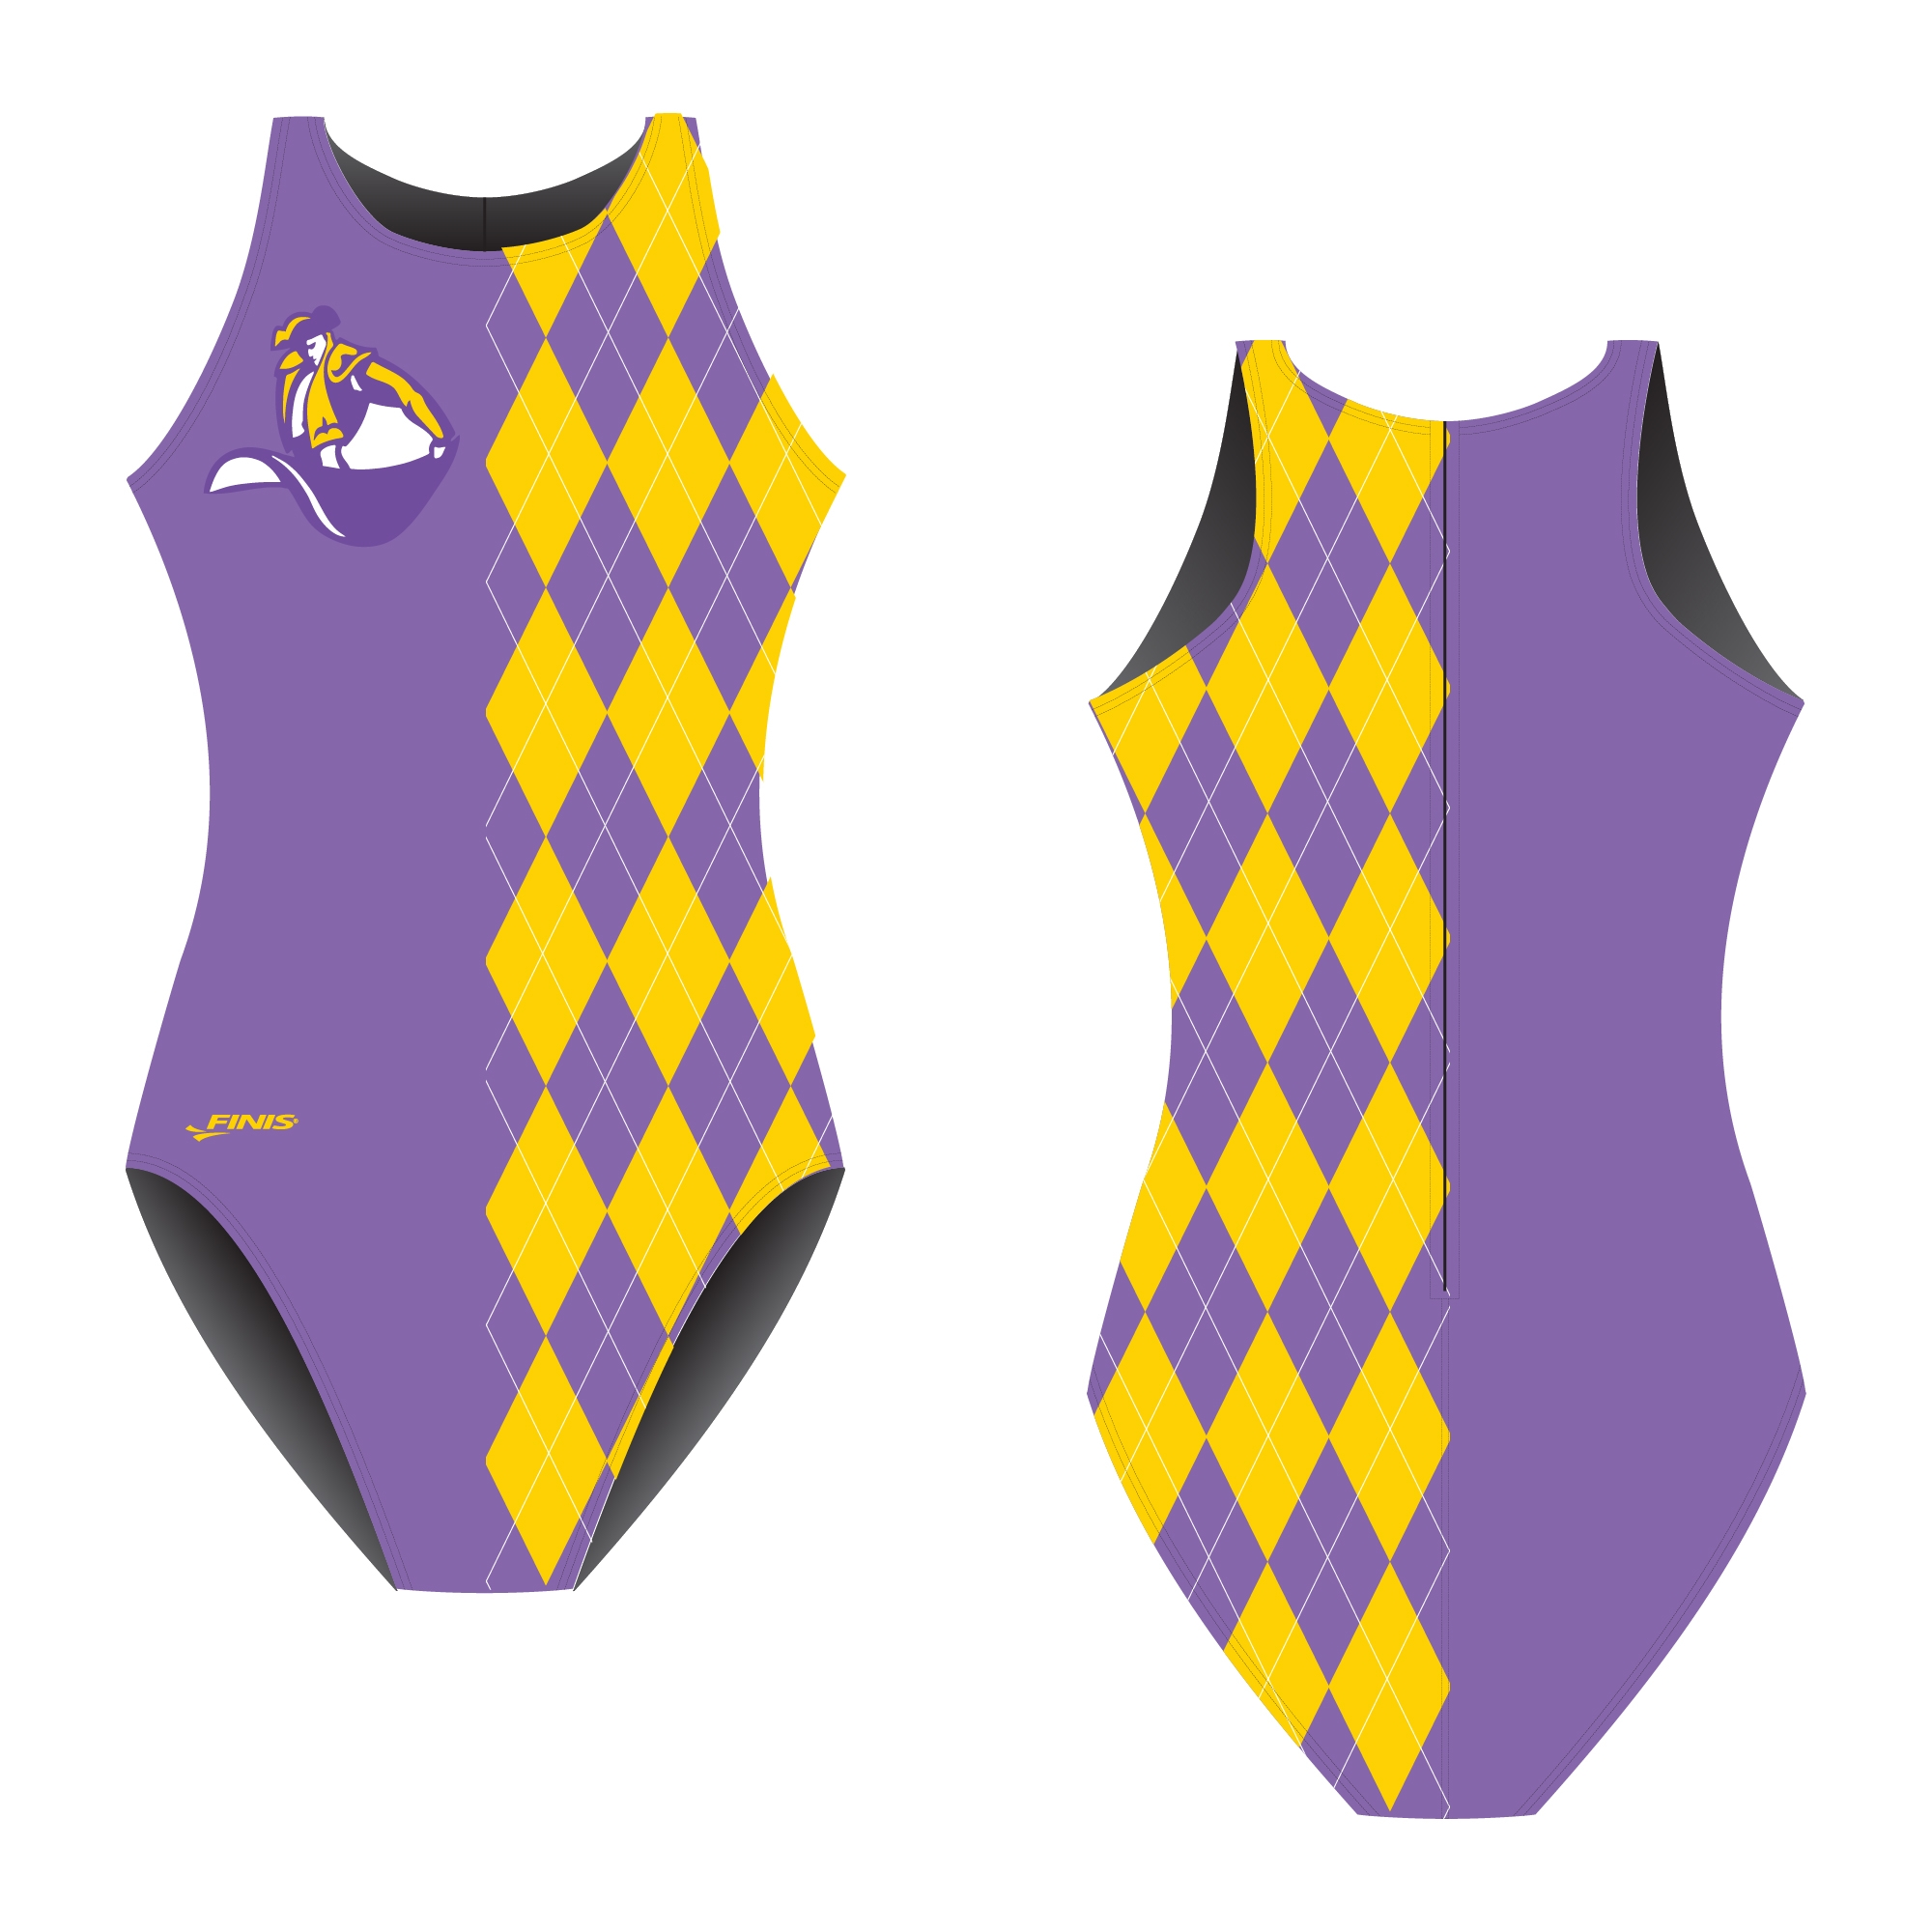 purple water polo swim suit with yellow triangles design on a finis custom proof with a matador logo